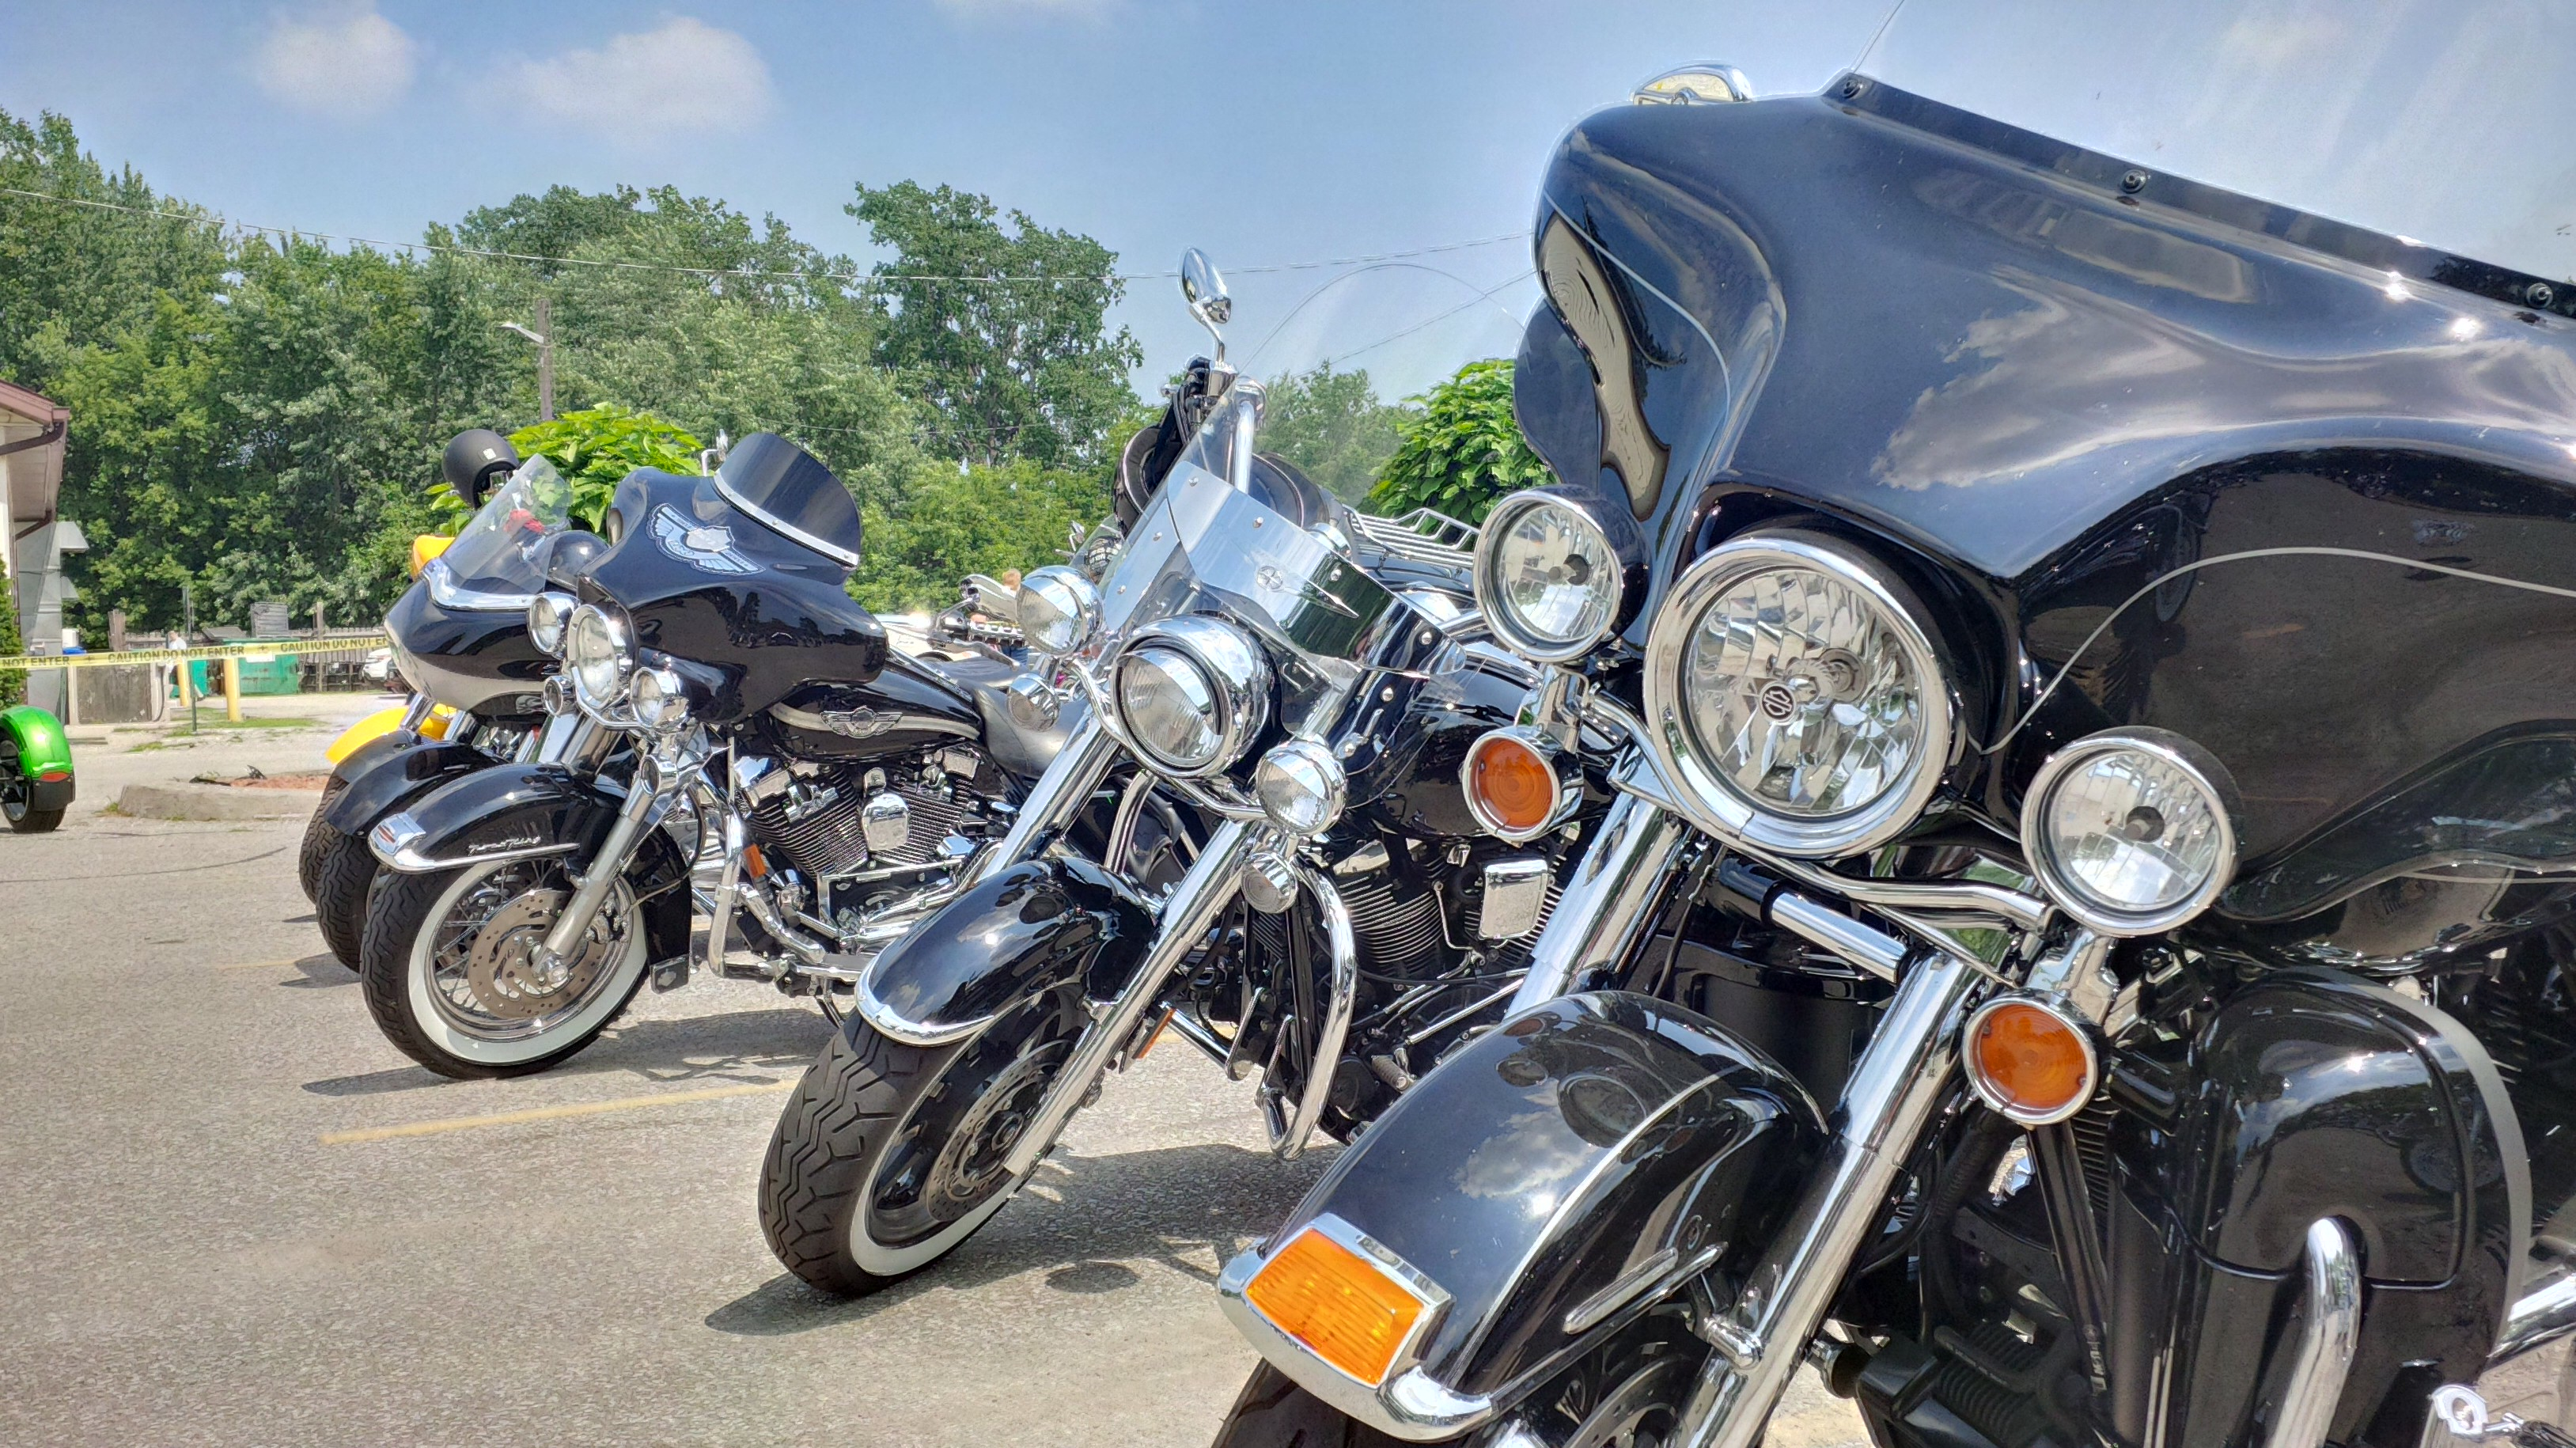 Bikes are parked at the Riverside Sportsmen's Club for the 3rd annual Bob Probert Memorial Ride. (Photo by Ricardo Veneza)